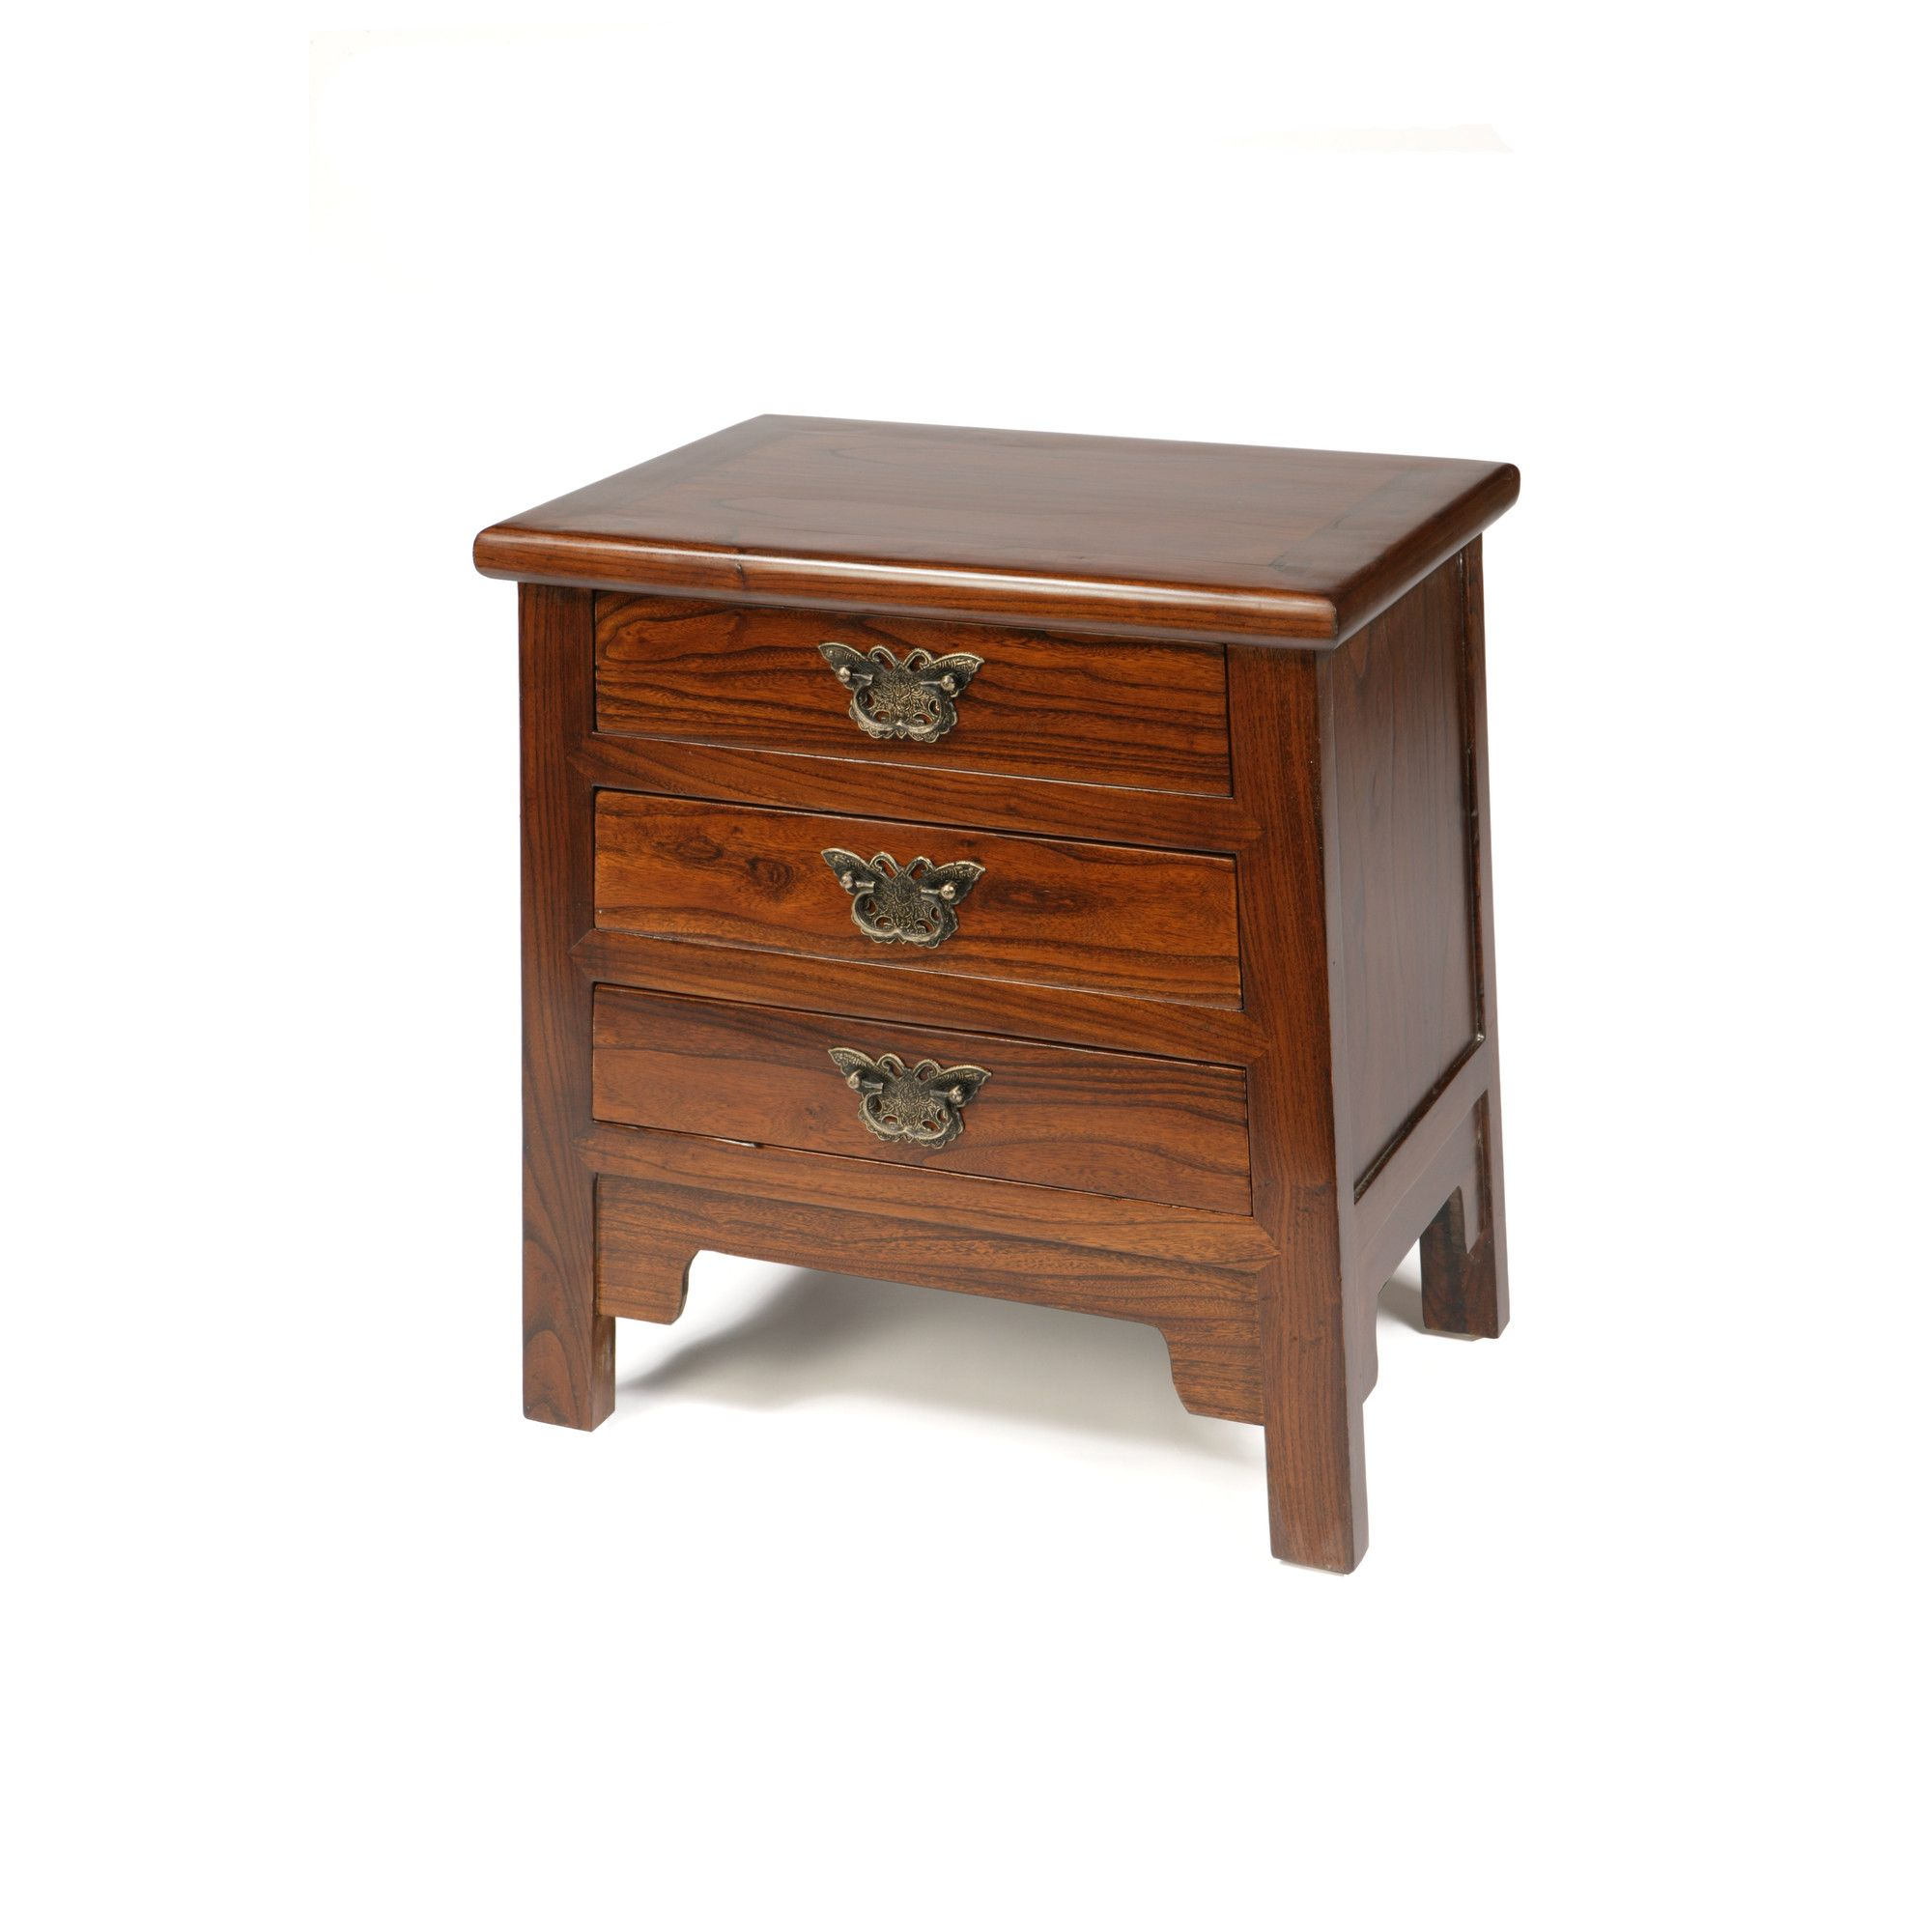 Shimu Chinese Classical Butterfly Drawers - Warm Elm at Tesco Direct